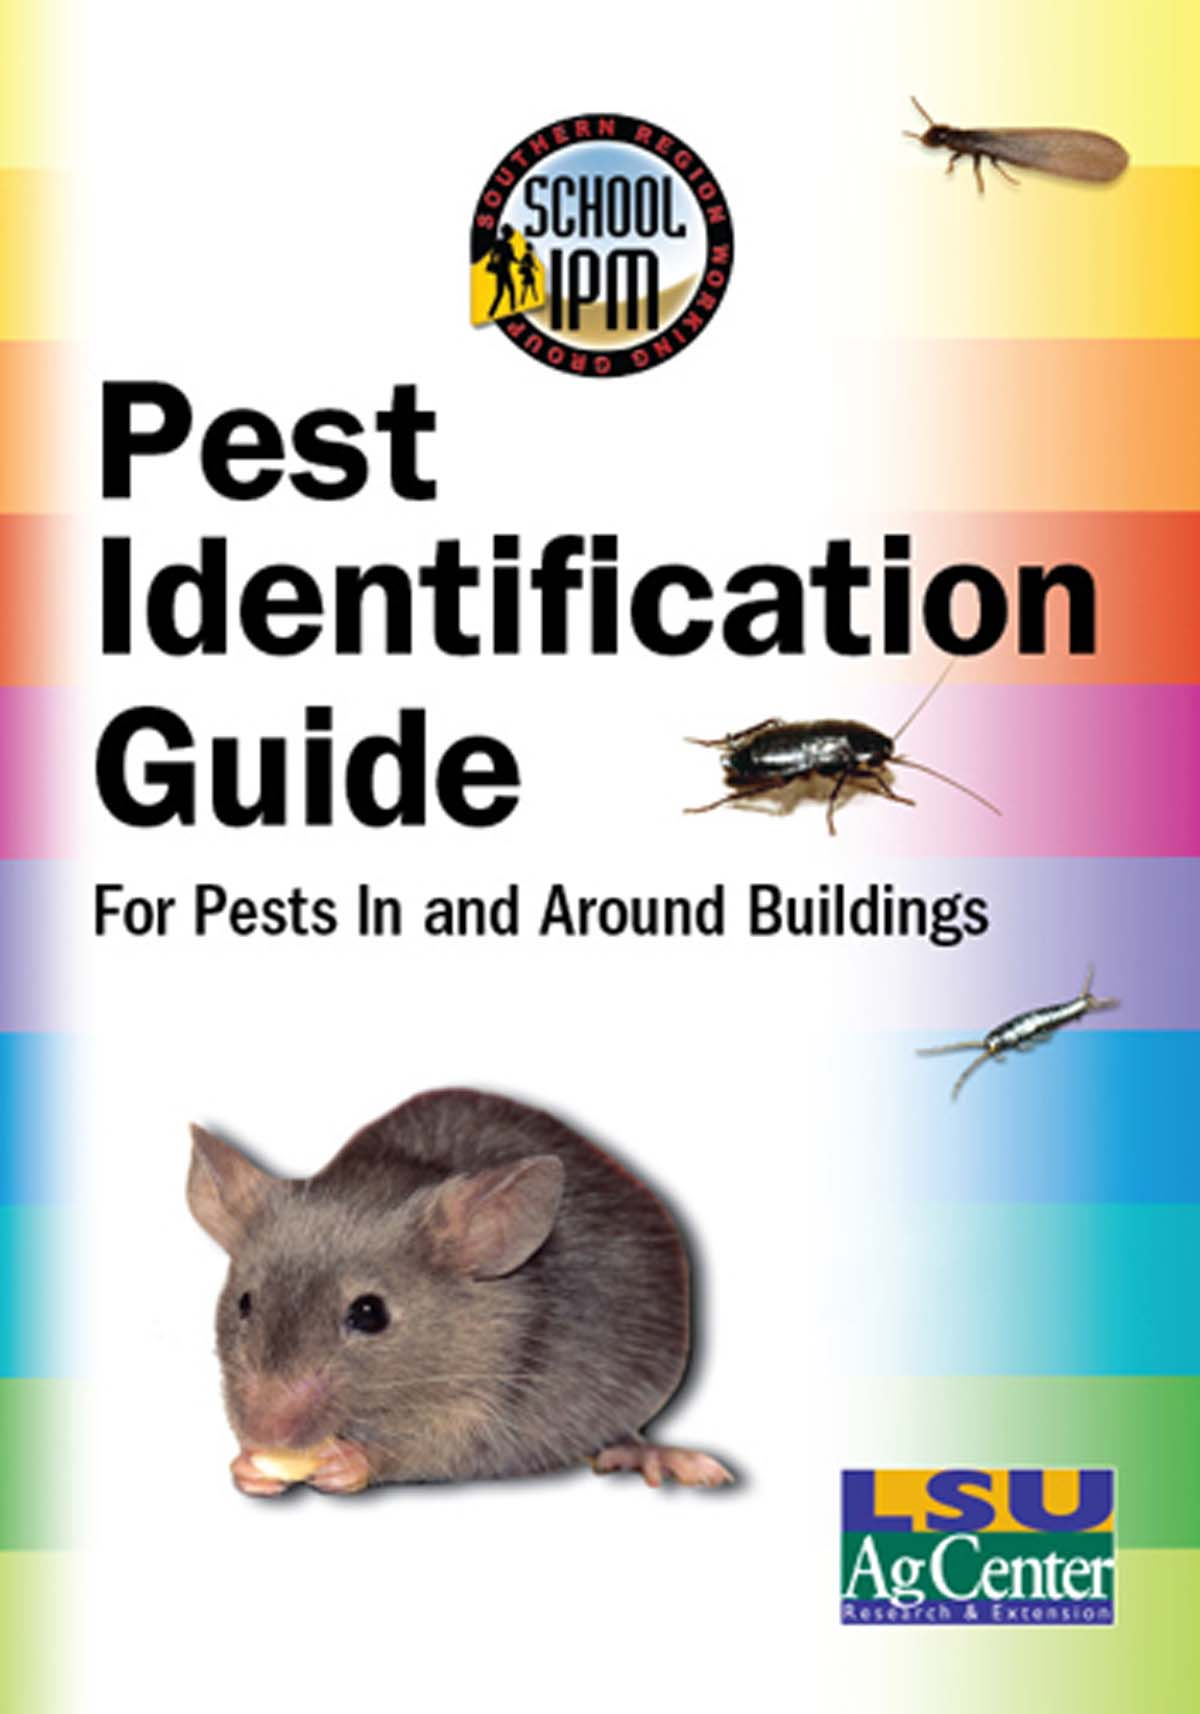 Pest Identification Guide released by LSU AgCenter